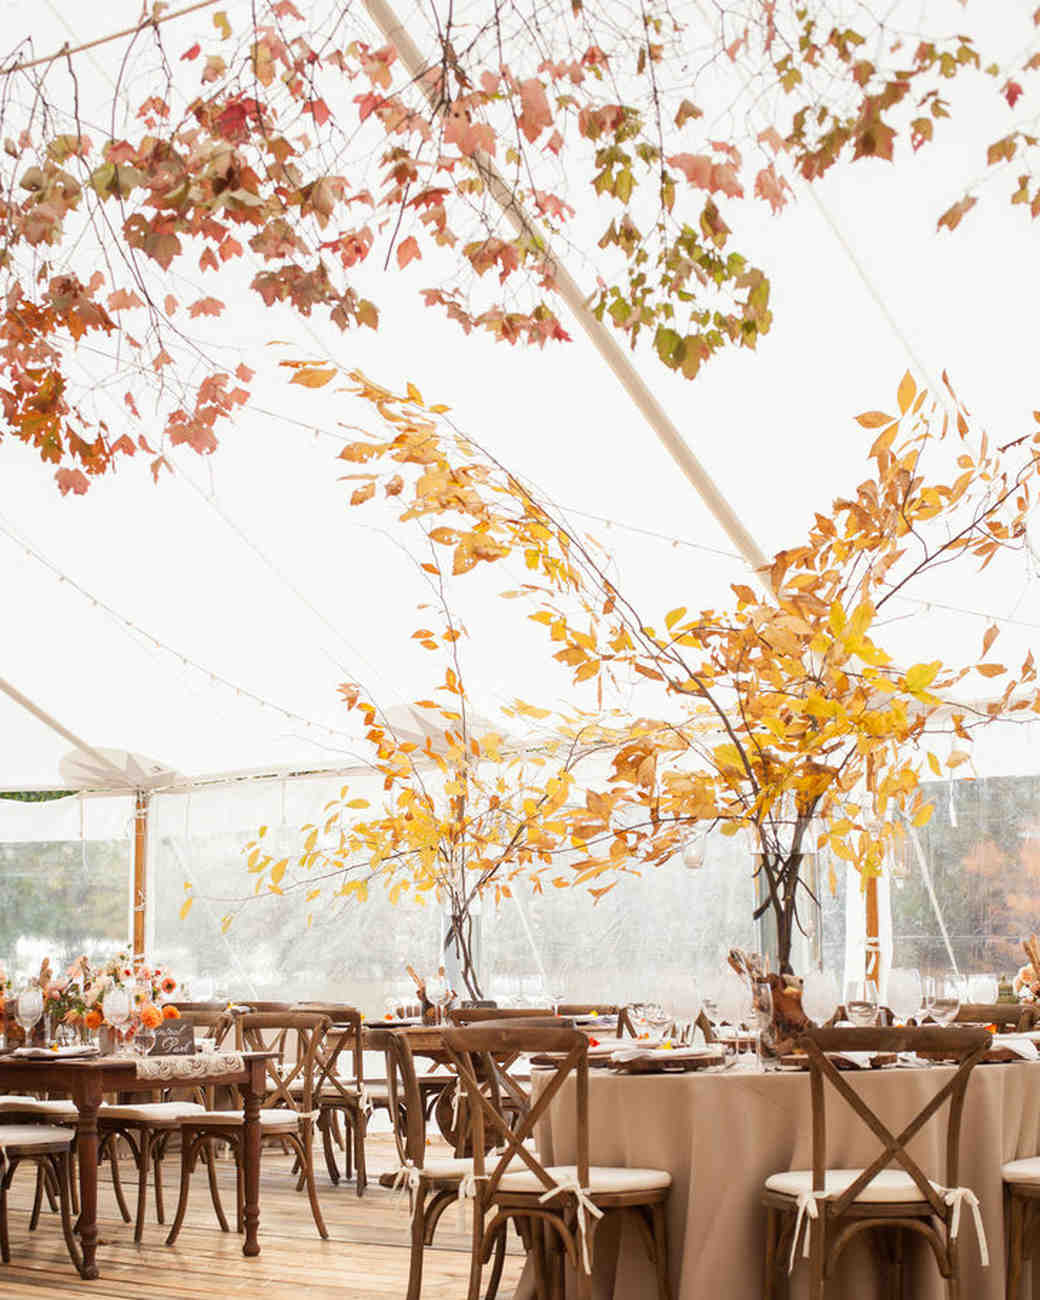 Fall Barn Wedding Ideas: 51 Rustic Fall Wedding Centerpieces